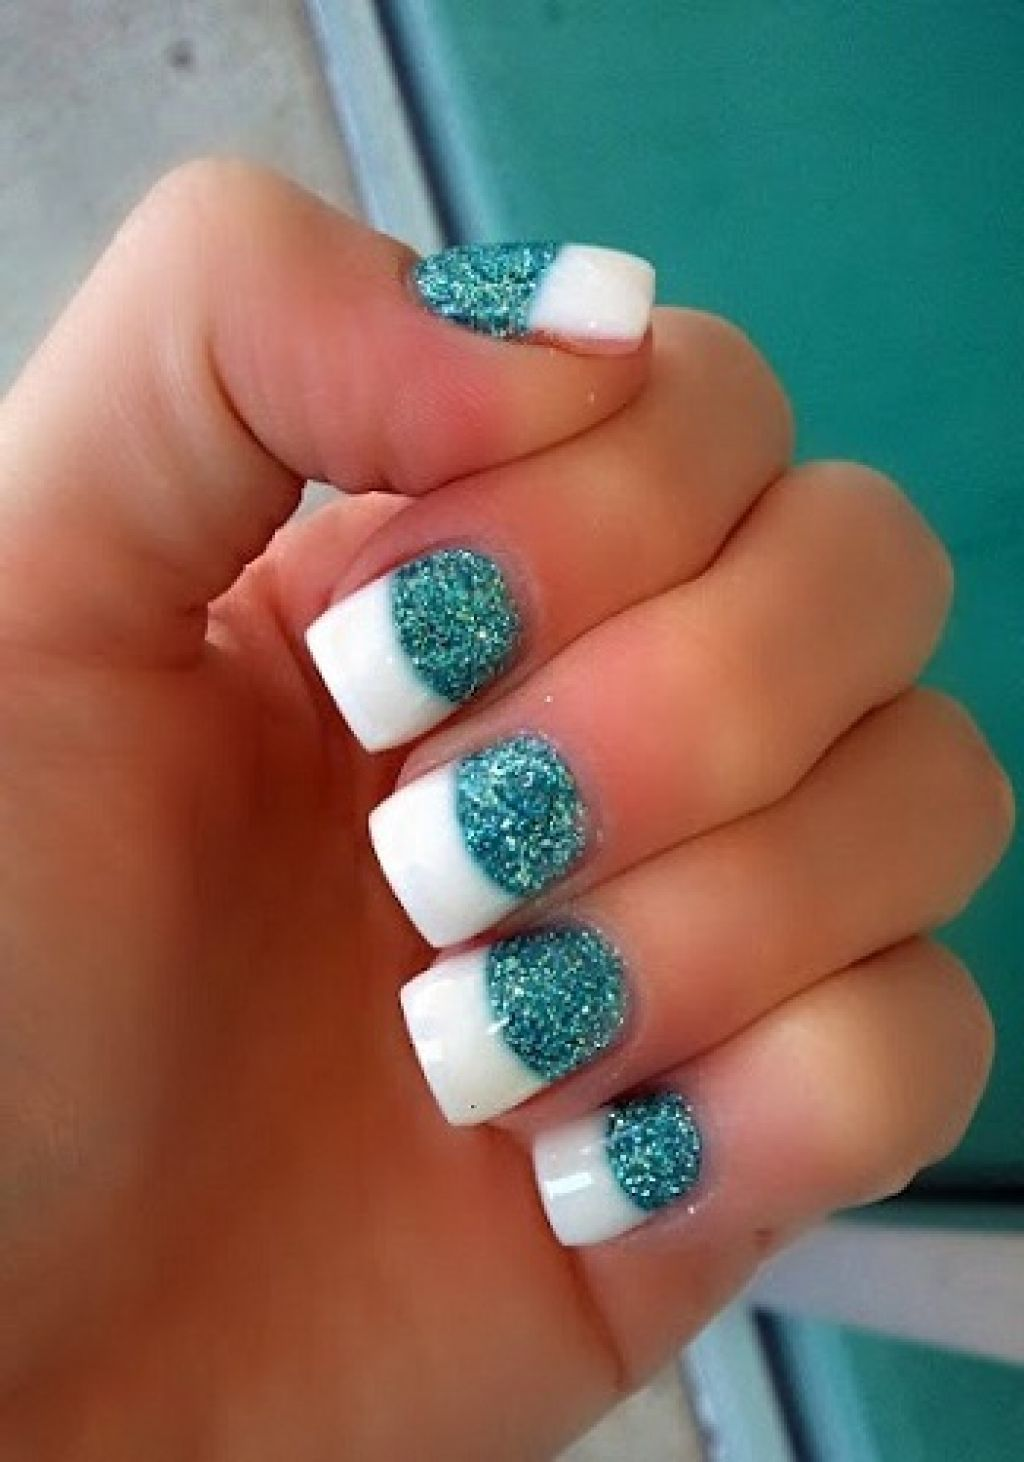 Summer acrylic nails gallery of cute acrylic nail designs tumblr summer acrylic nails gallery of cute acrylic nail designs tumblr for summer prinsesfo Image collections